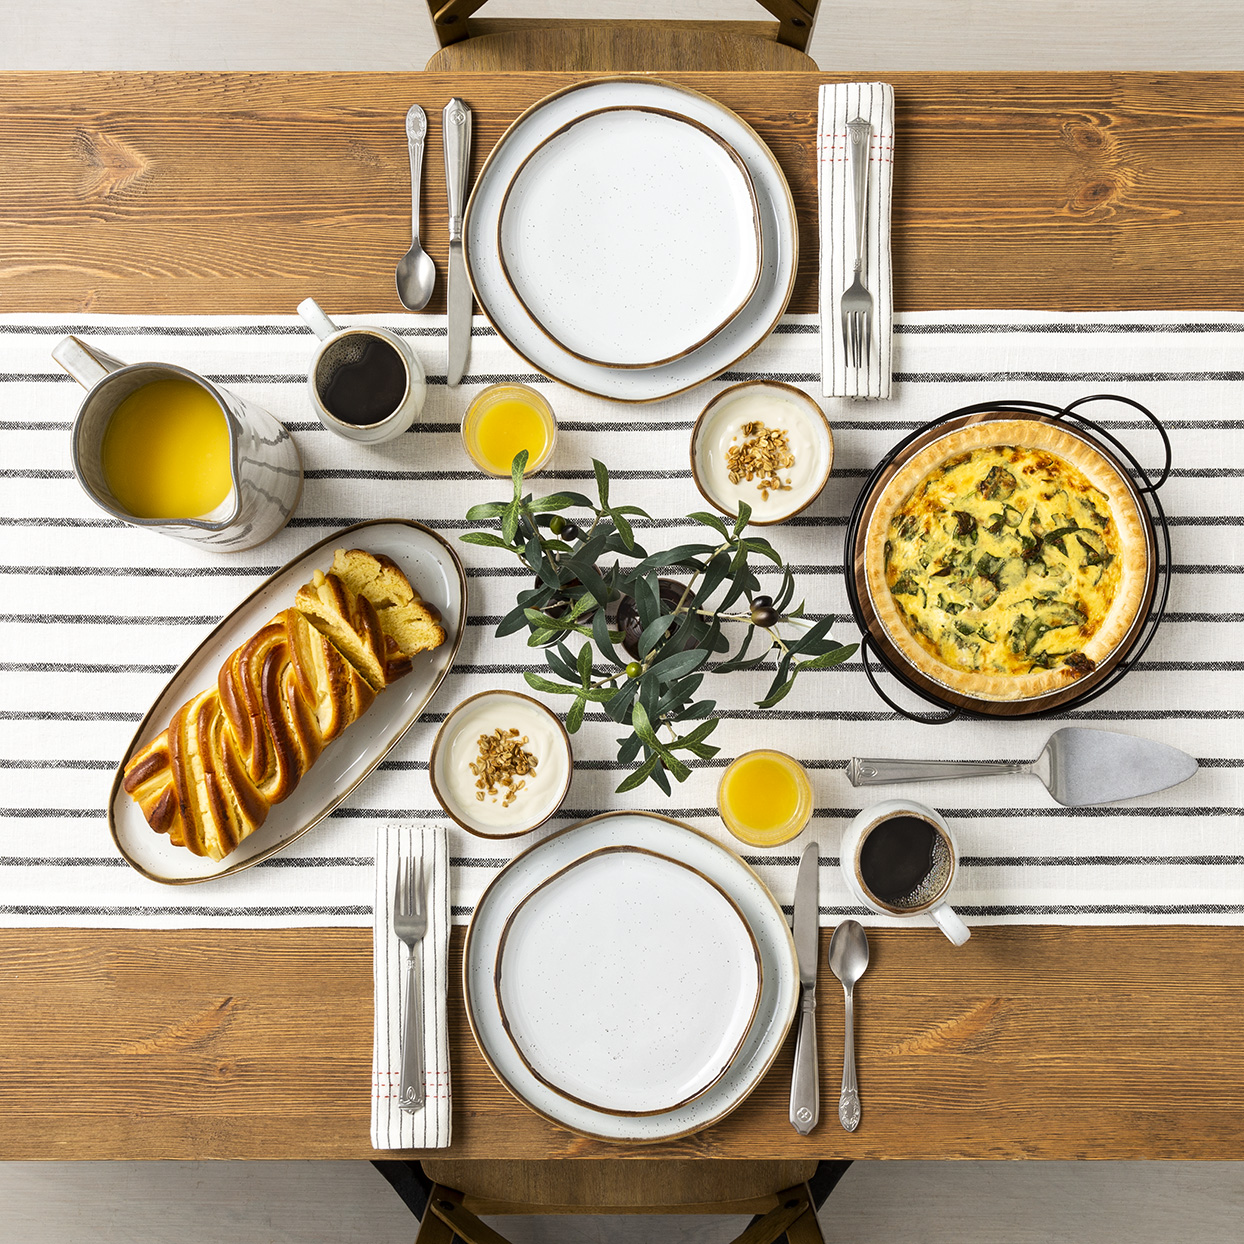 Overhead shot of dining table with black and white striped table runner and stoneware dishes